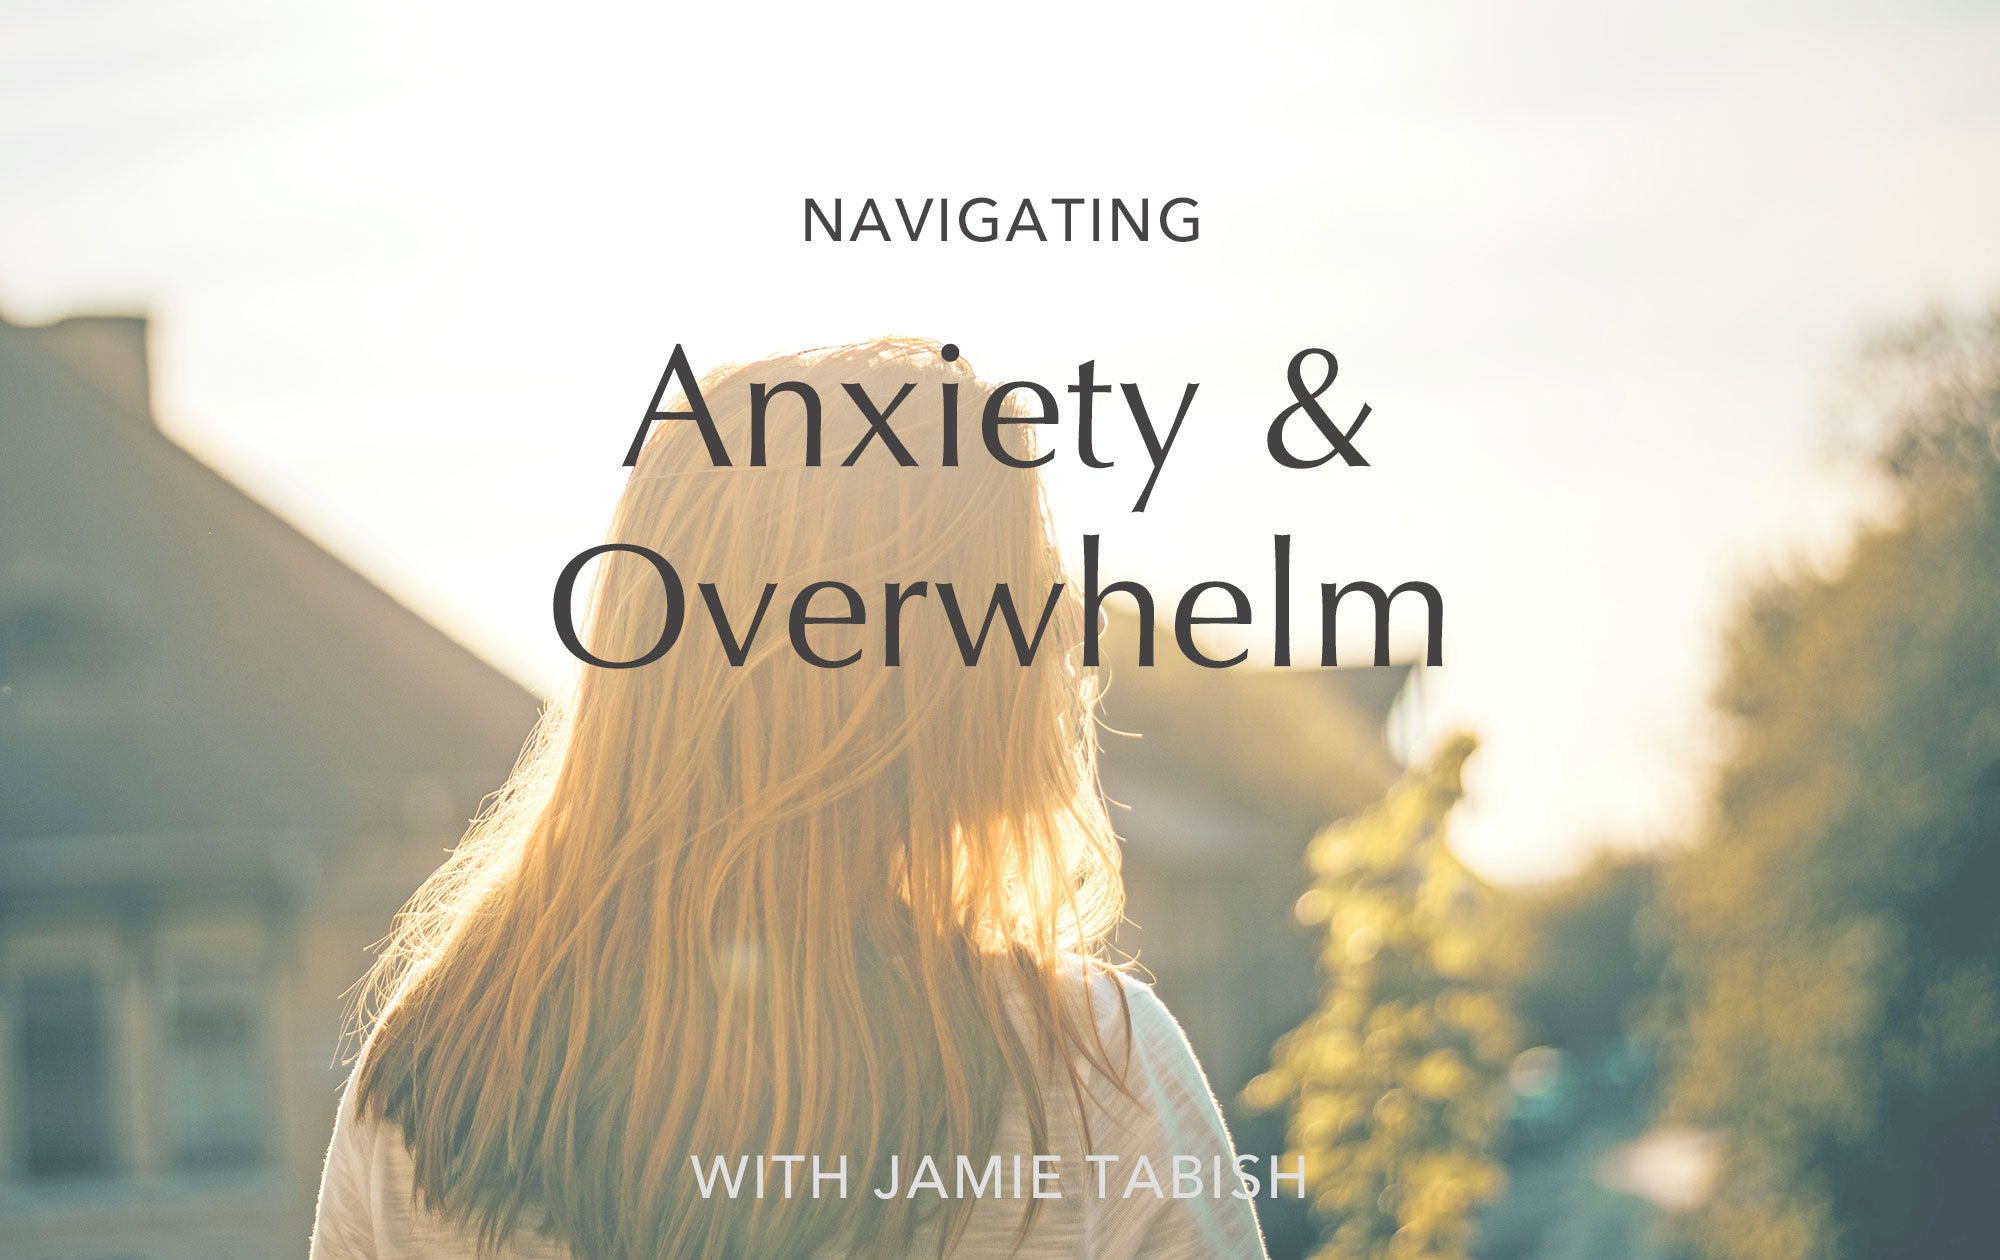 Do you struggle with anxiety and overwhelm? Try this advice from an Executive Functions Coach.